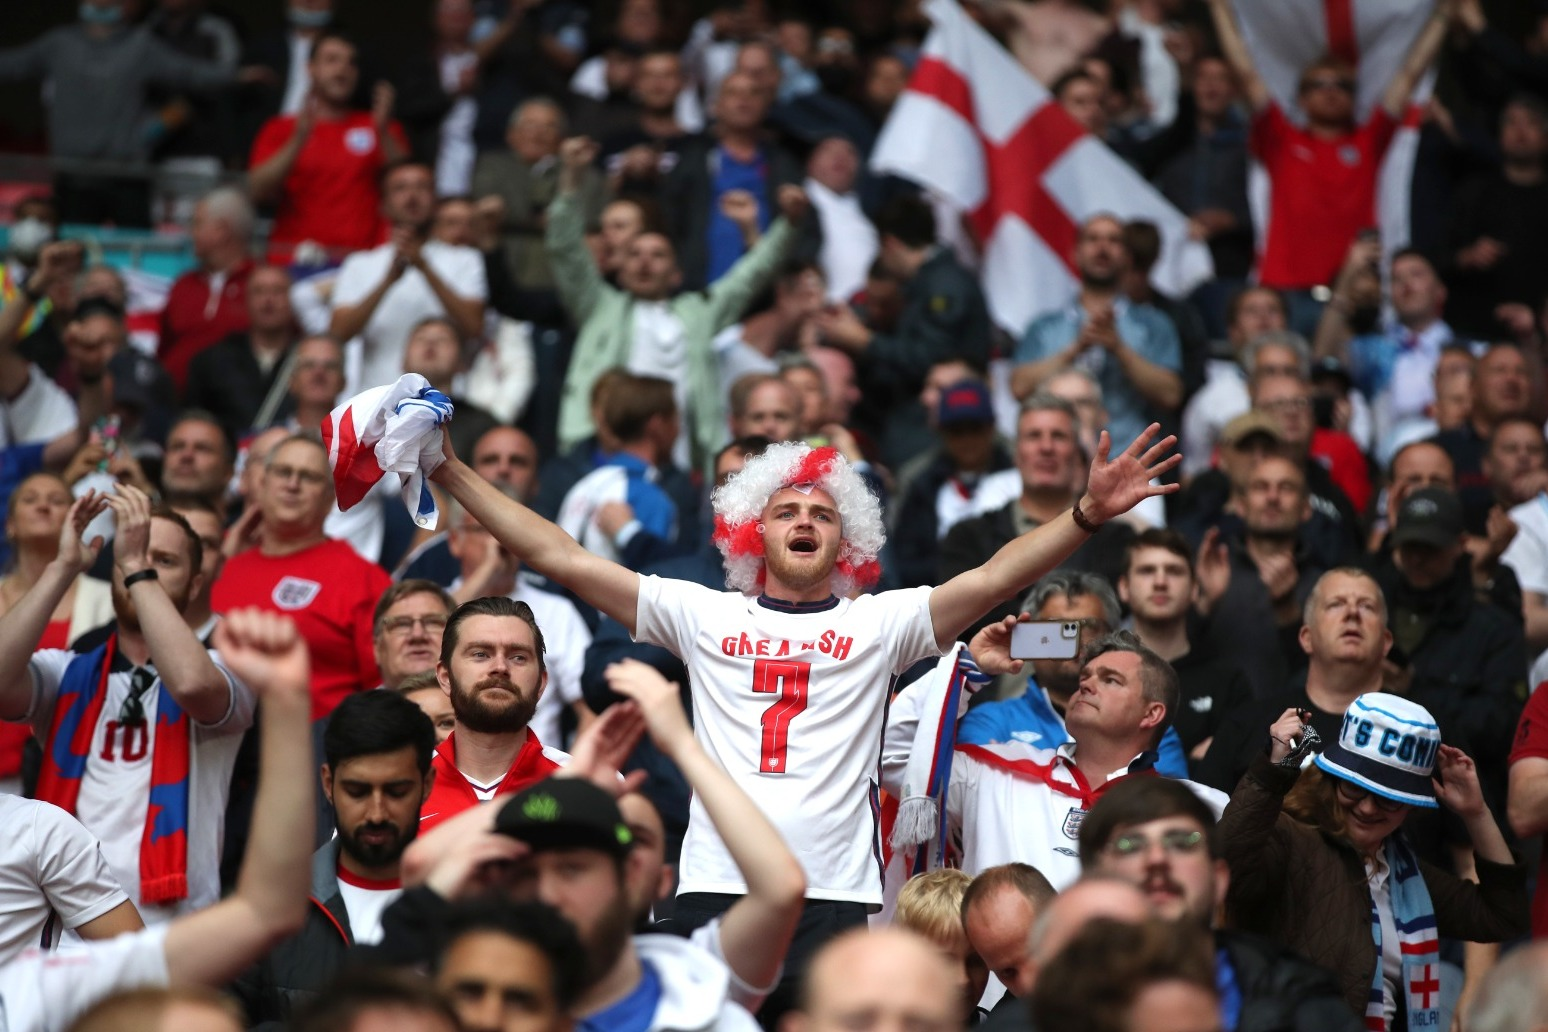 Covid restrictions to dampen stadium support for England's Euro 2020 clash